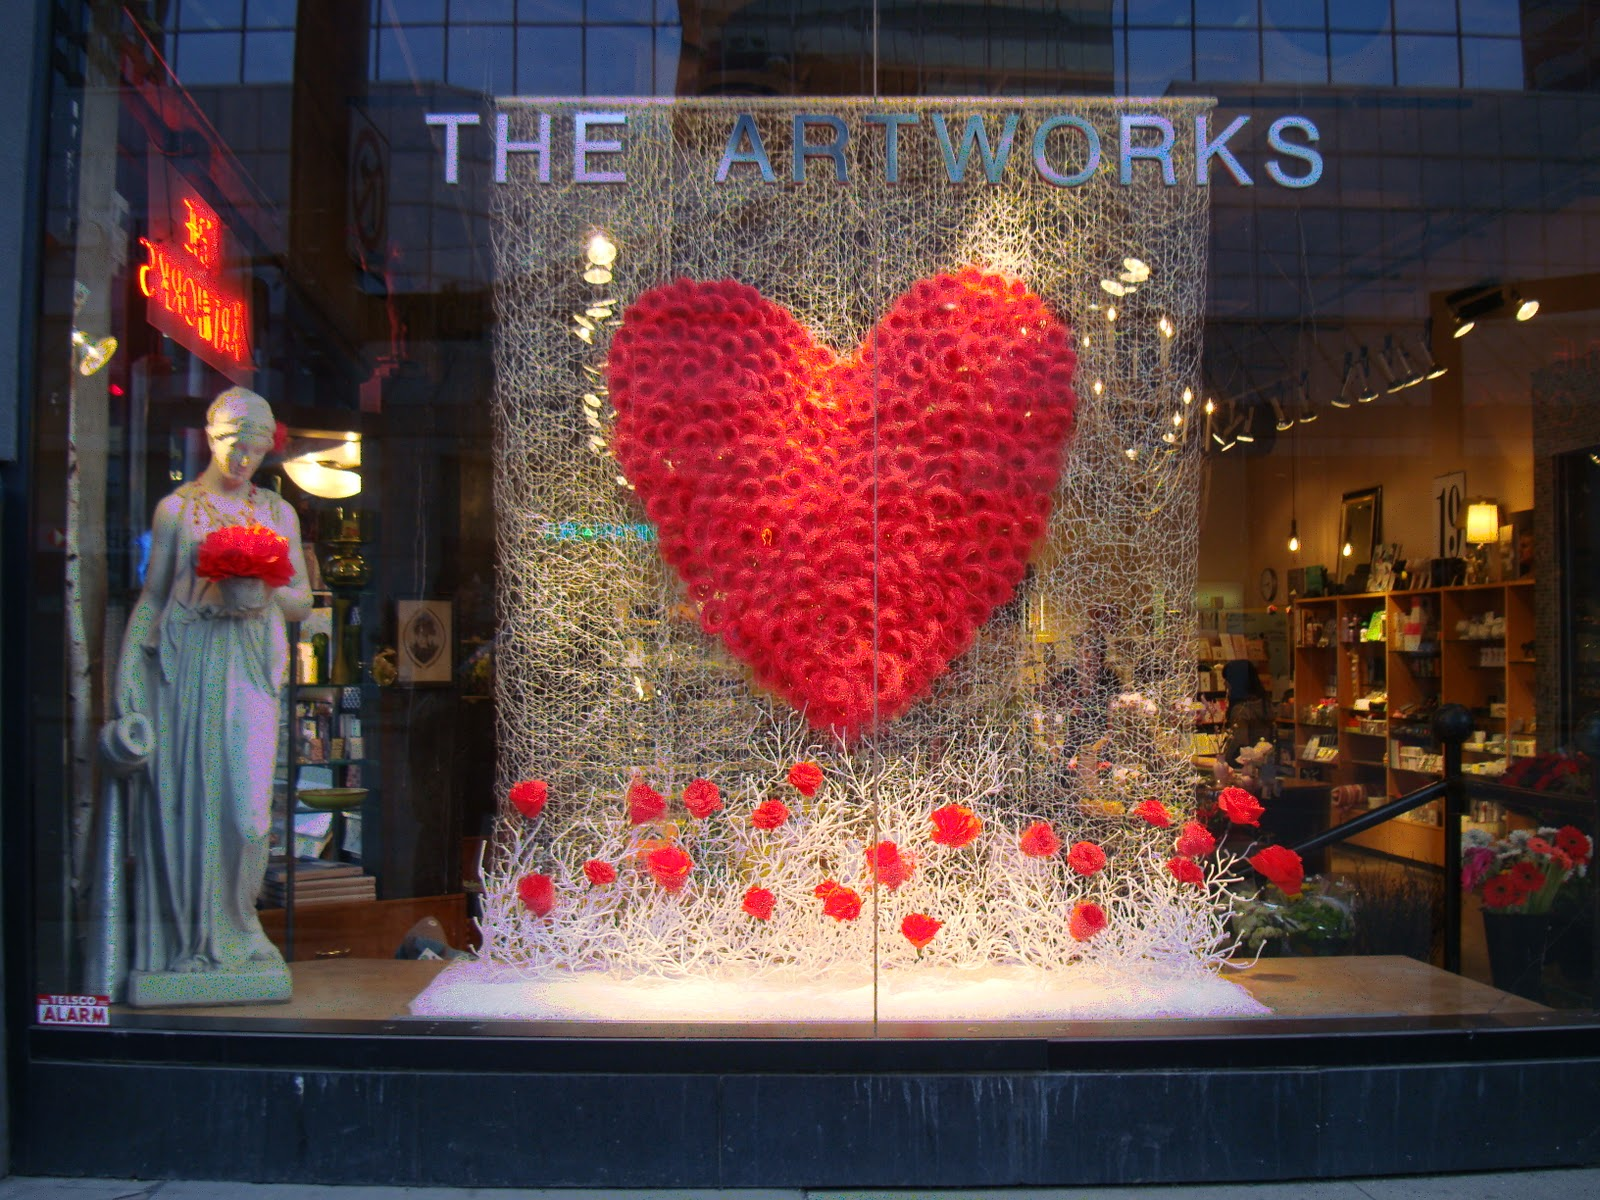 A window display for Valentine's day designed with fine taste, a statue holding flowers, and a beige background with a big heart in the middle and poppy flowers at the bottom.